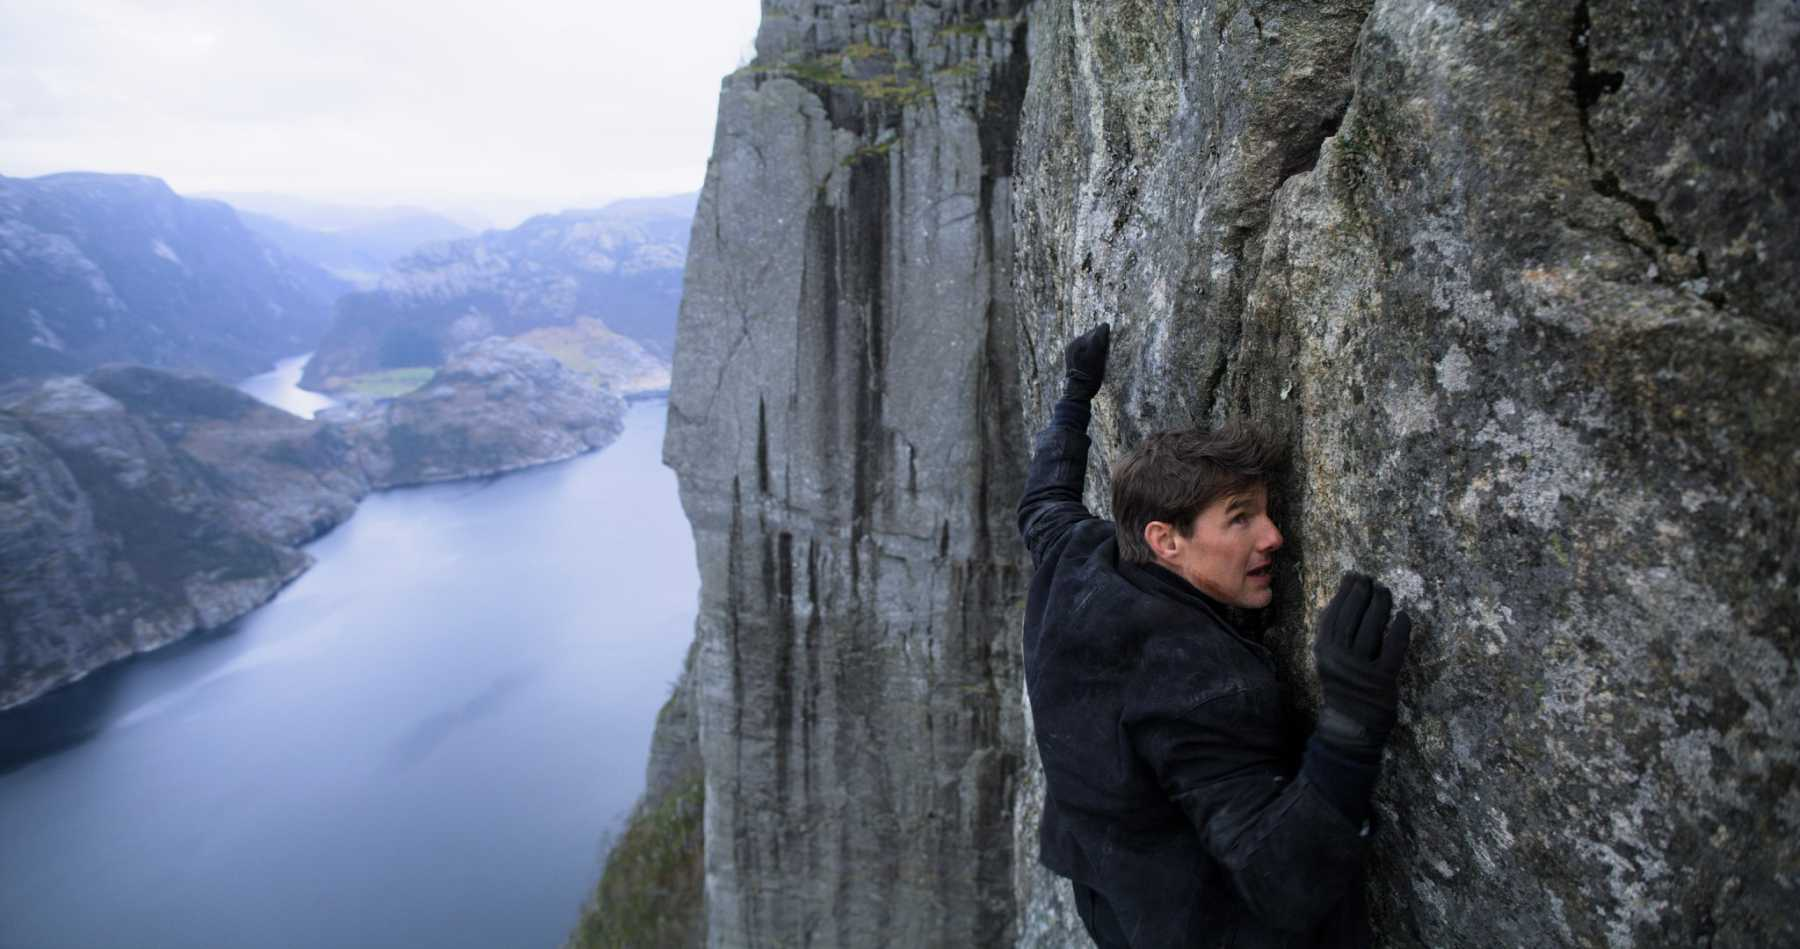 How 'Mission: Impossible - Fallout' Pulled Off Daring Helicopter Stunts